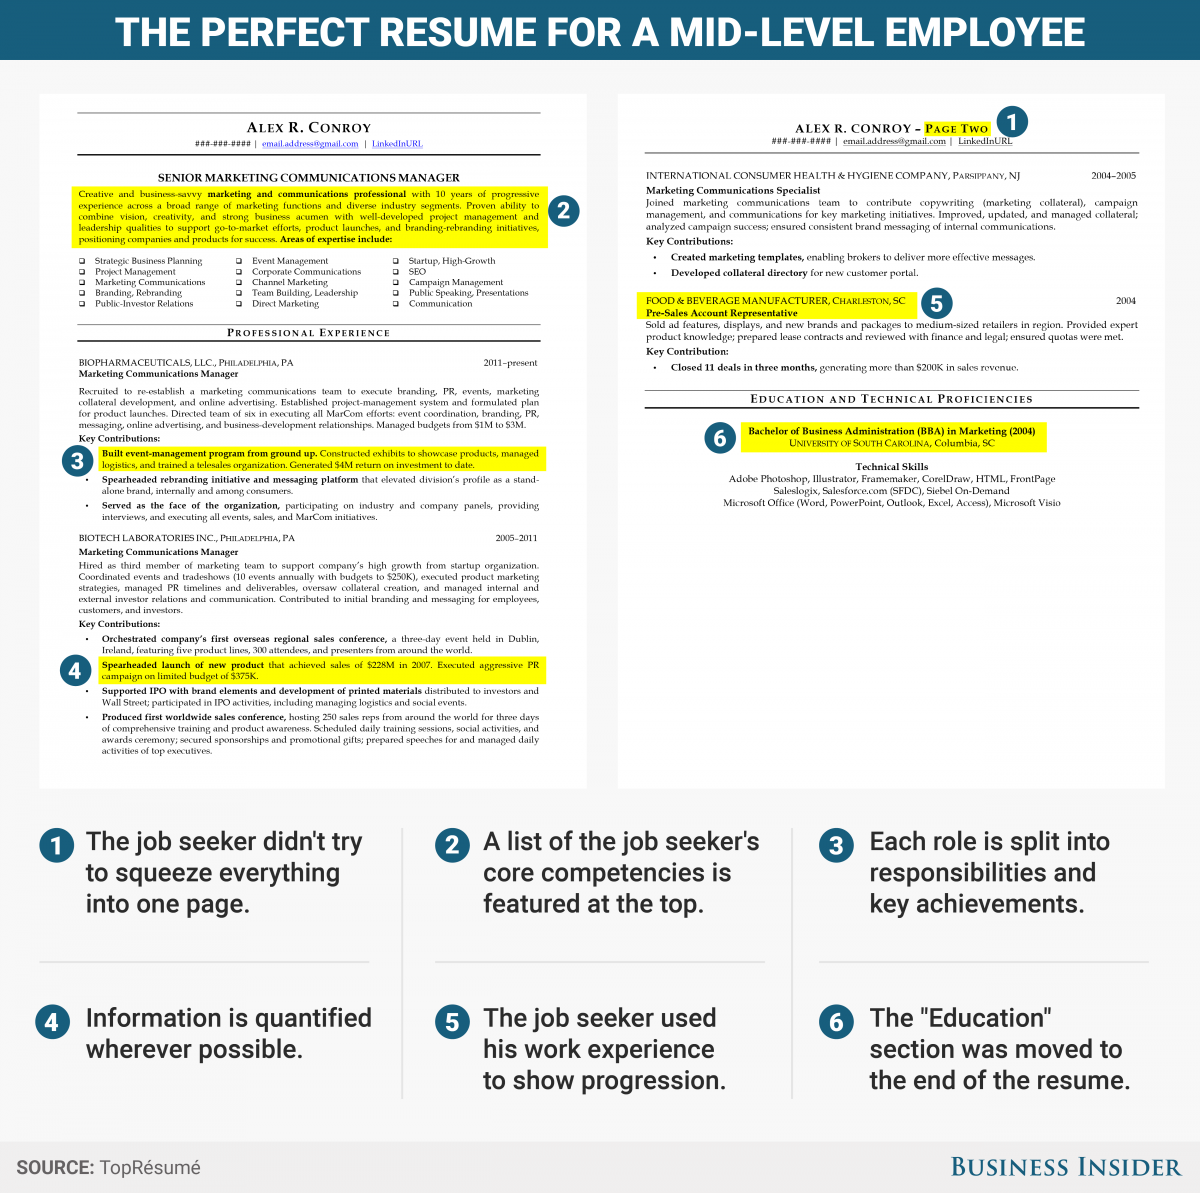 6 Universal Rules for Resume Writing in 2020 Resume